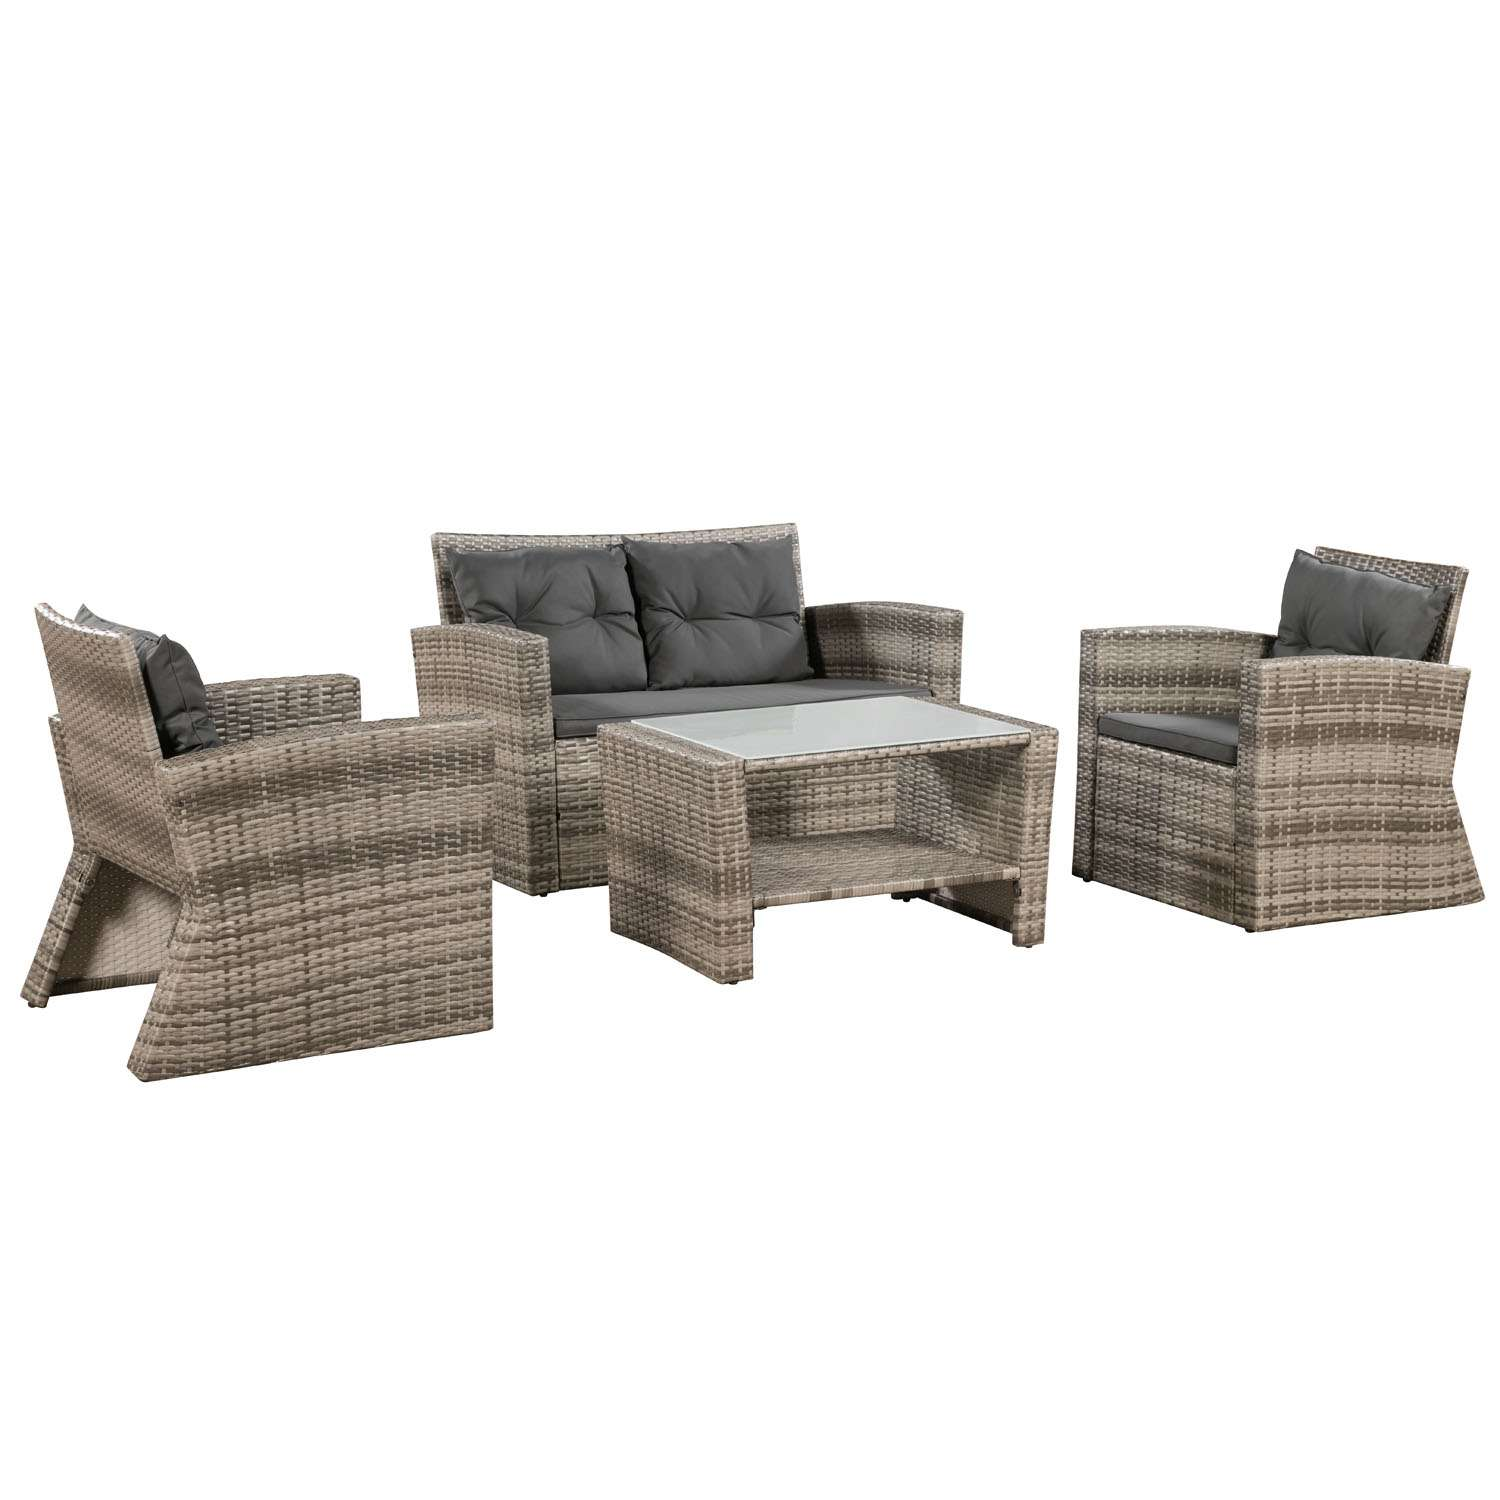 Loungemobel Rattan Amazon Beige Optik Rattan Lounge Set